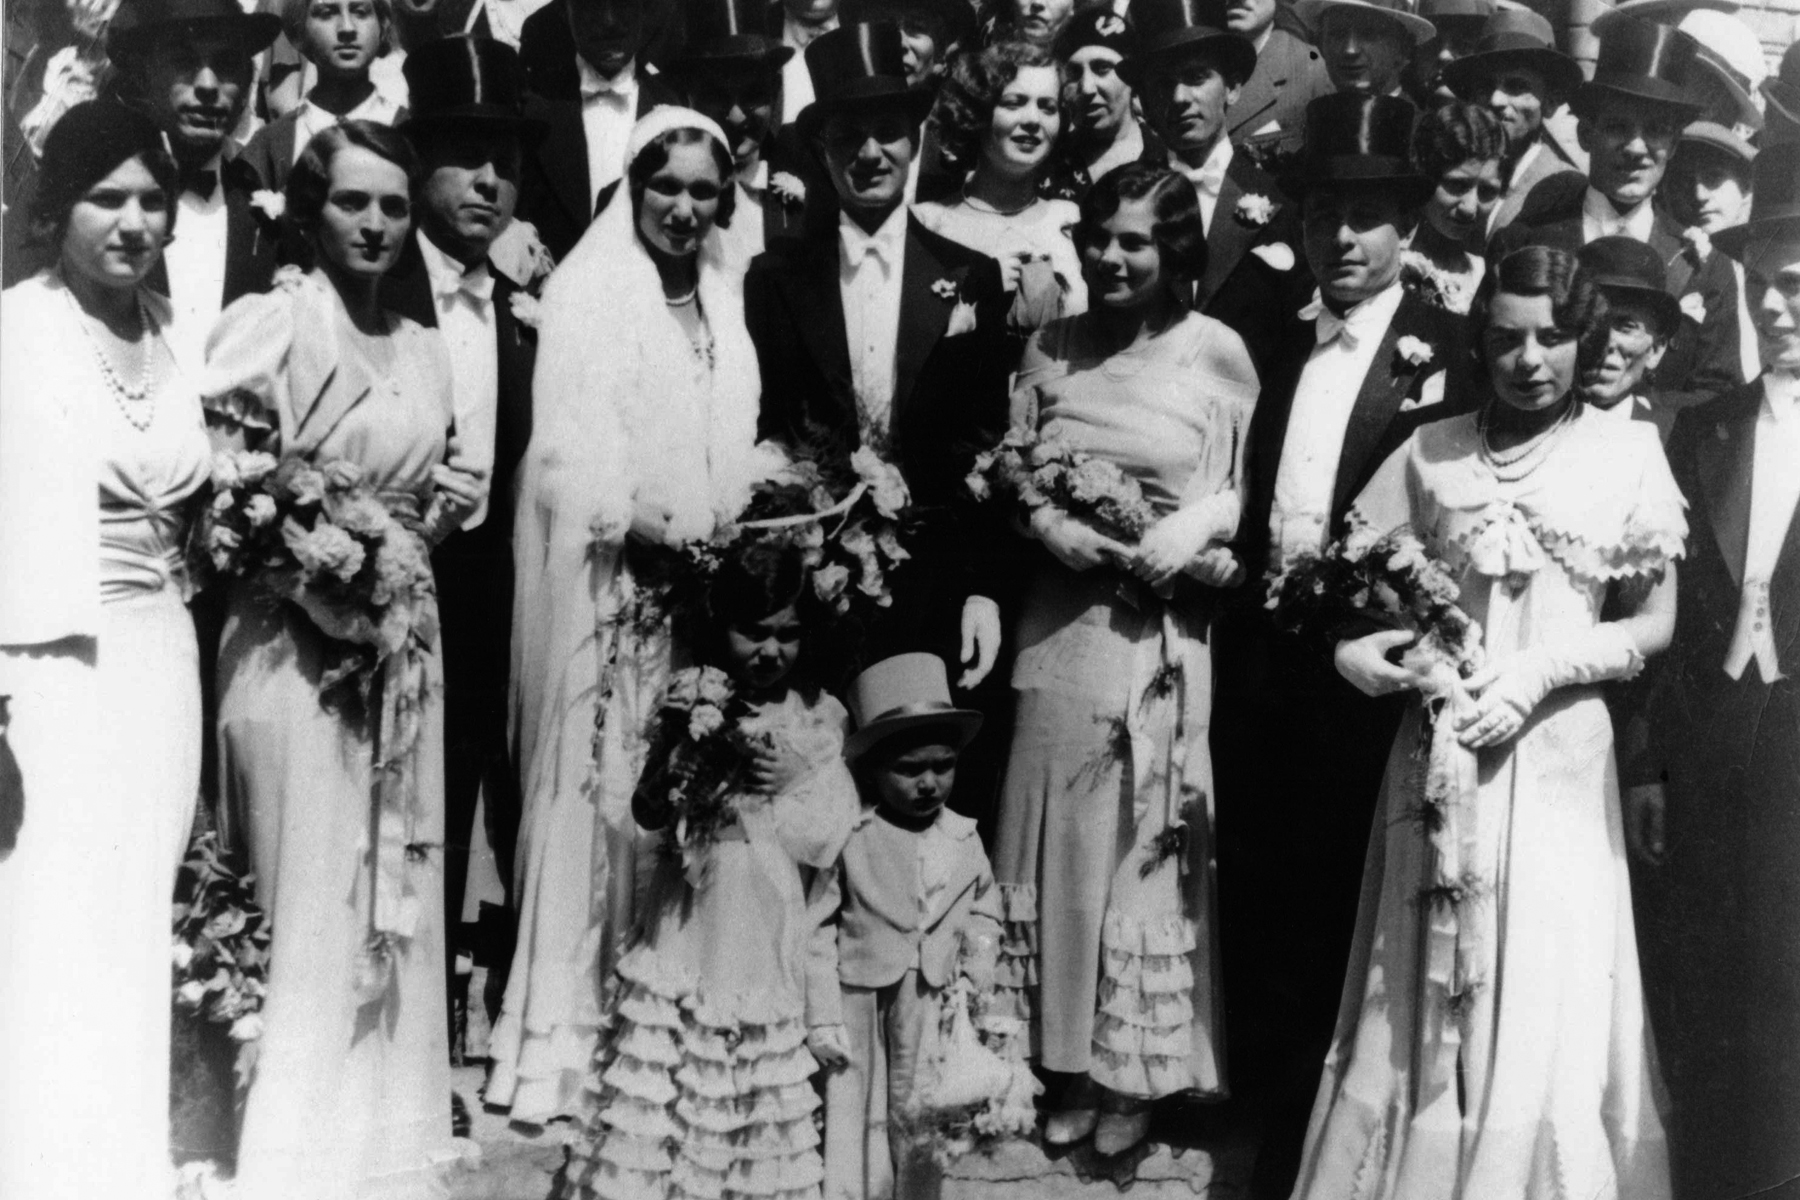 The wedding of Stephan Molnar and Edith Gero, Budapest, Hungary,1932